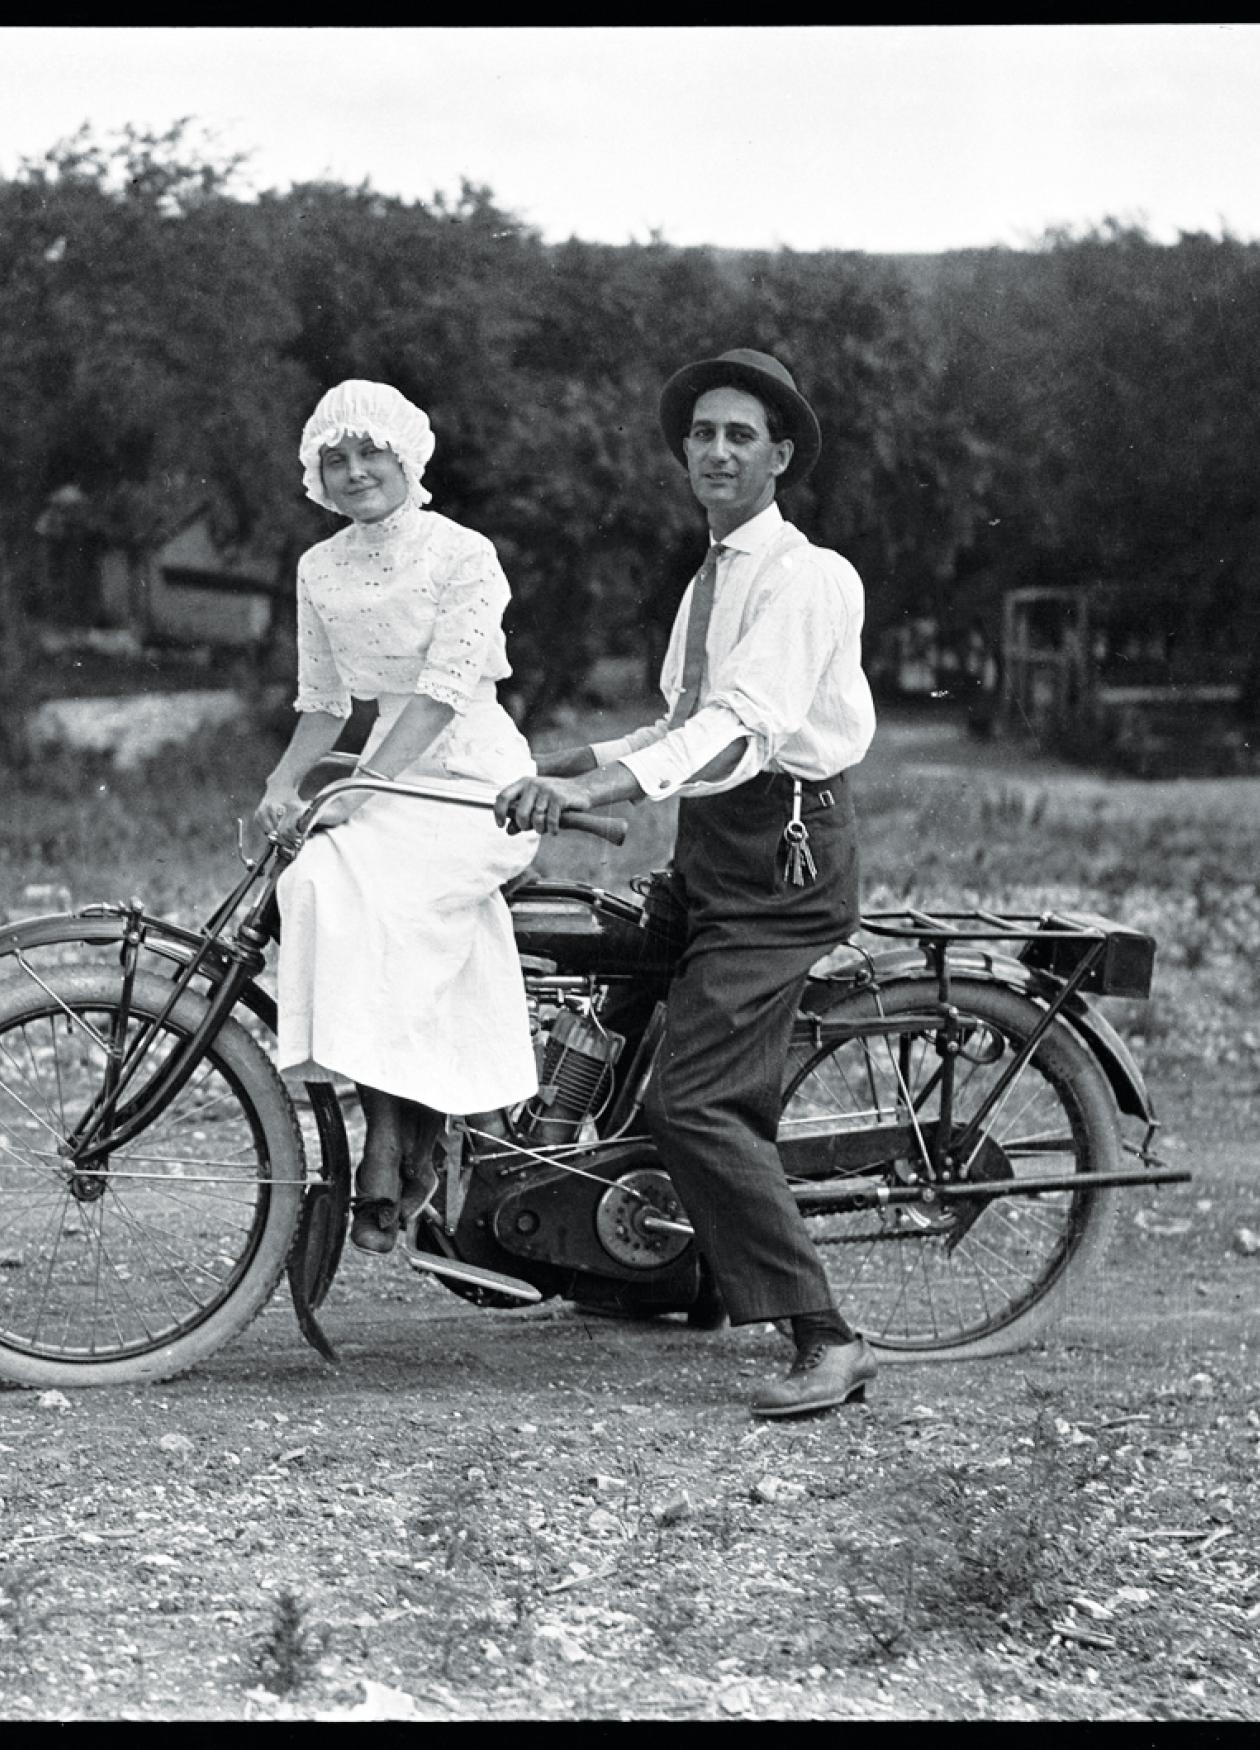 Kratzer, in a white shirt and black hat, sits on a motorcycle behind a woman in a white dress and cap, on a dirt road